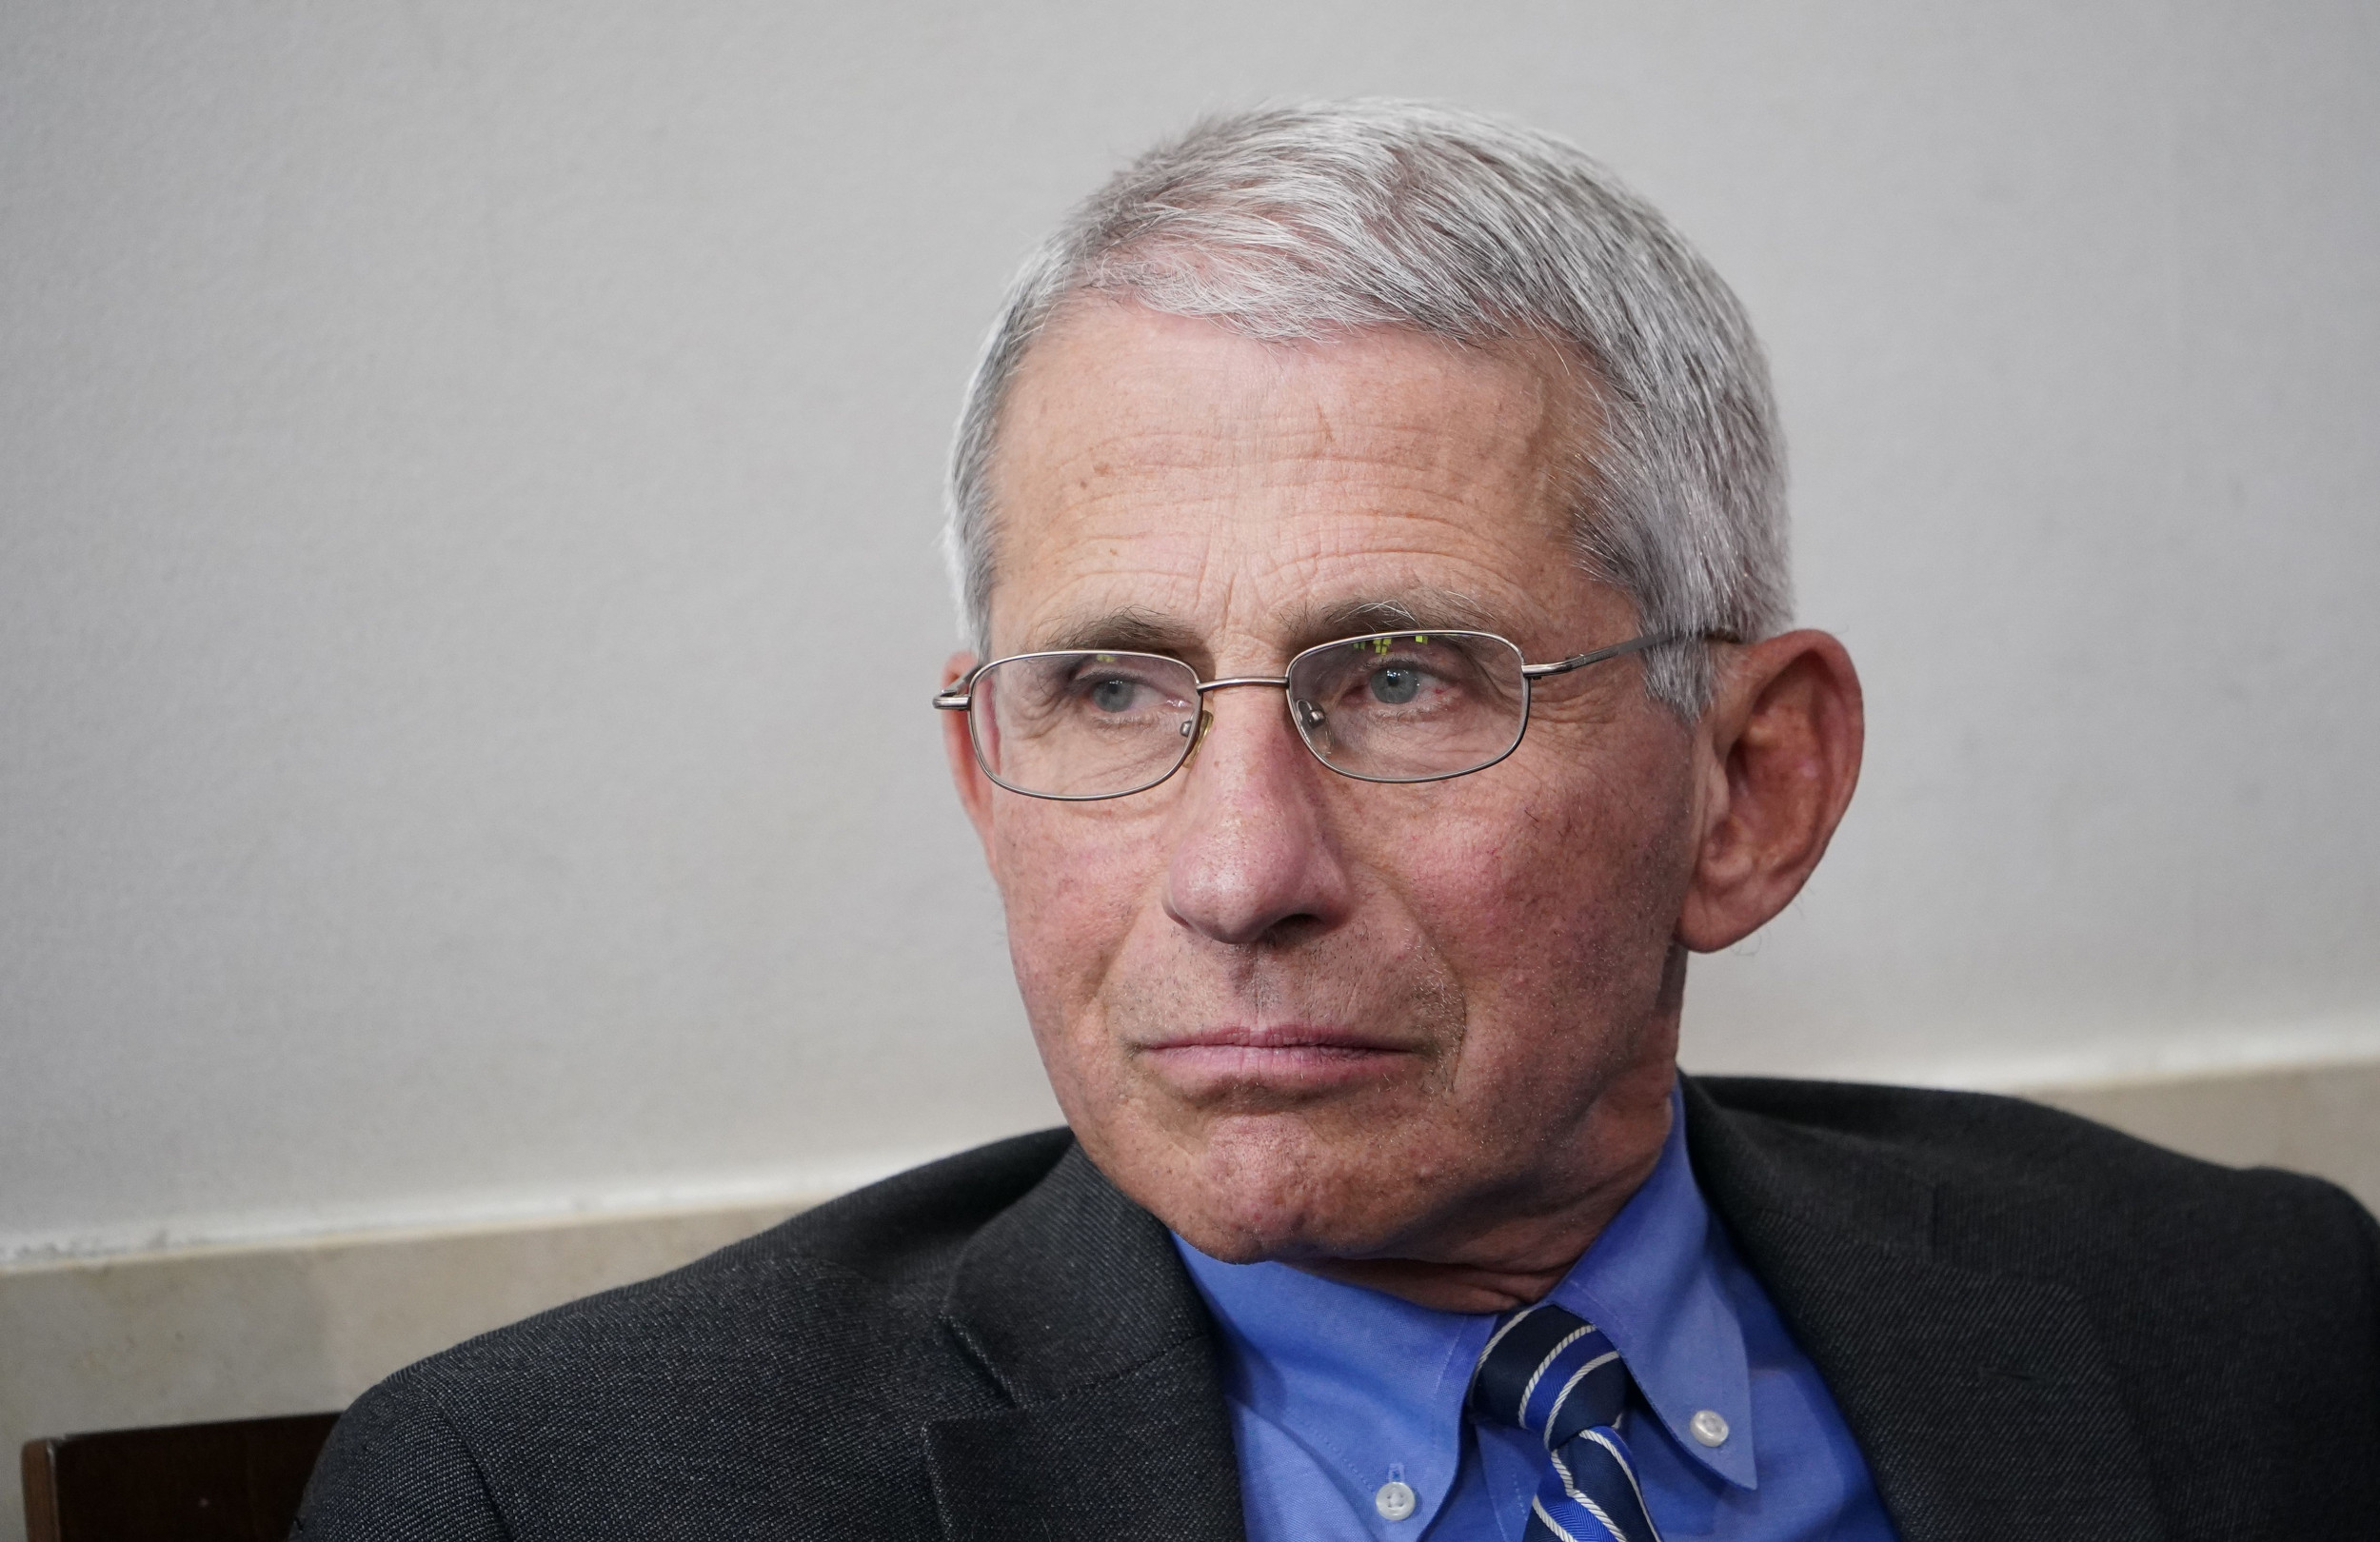 """Dr. Fauci says coronavirus vaccine doses will be manufactured """"before we even know that the vaccine works"""""""